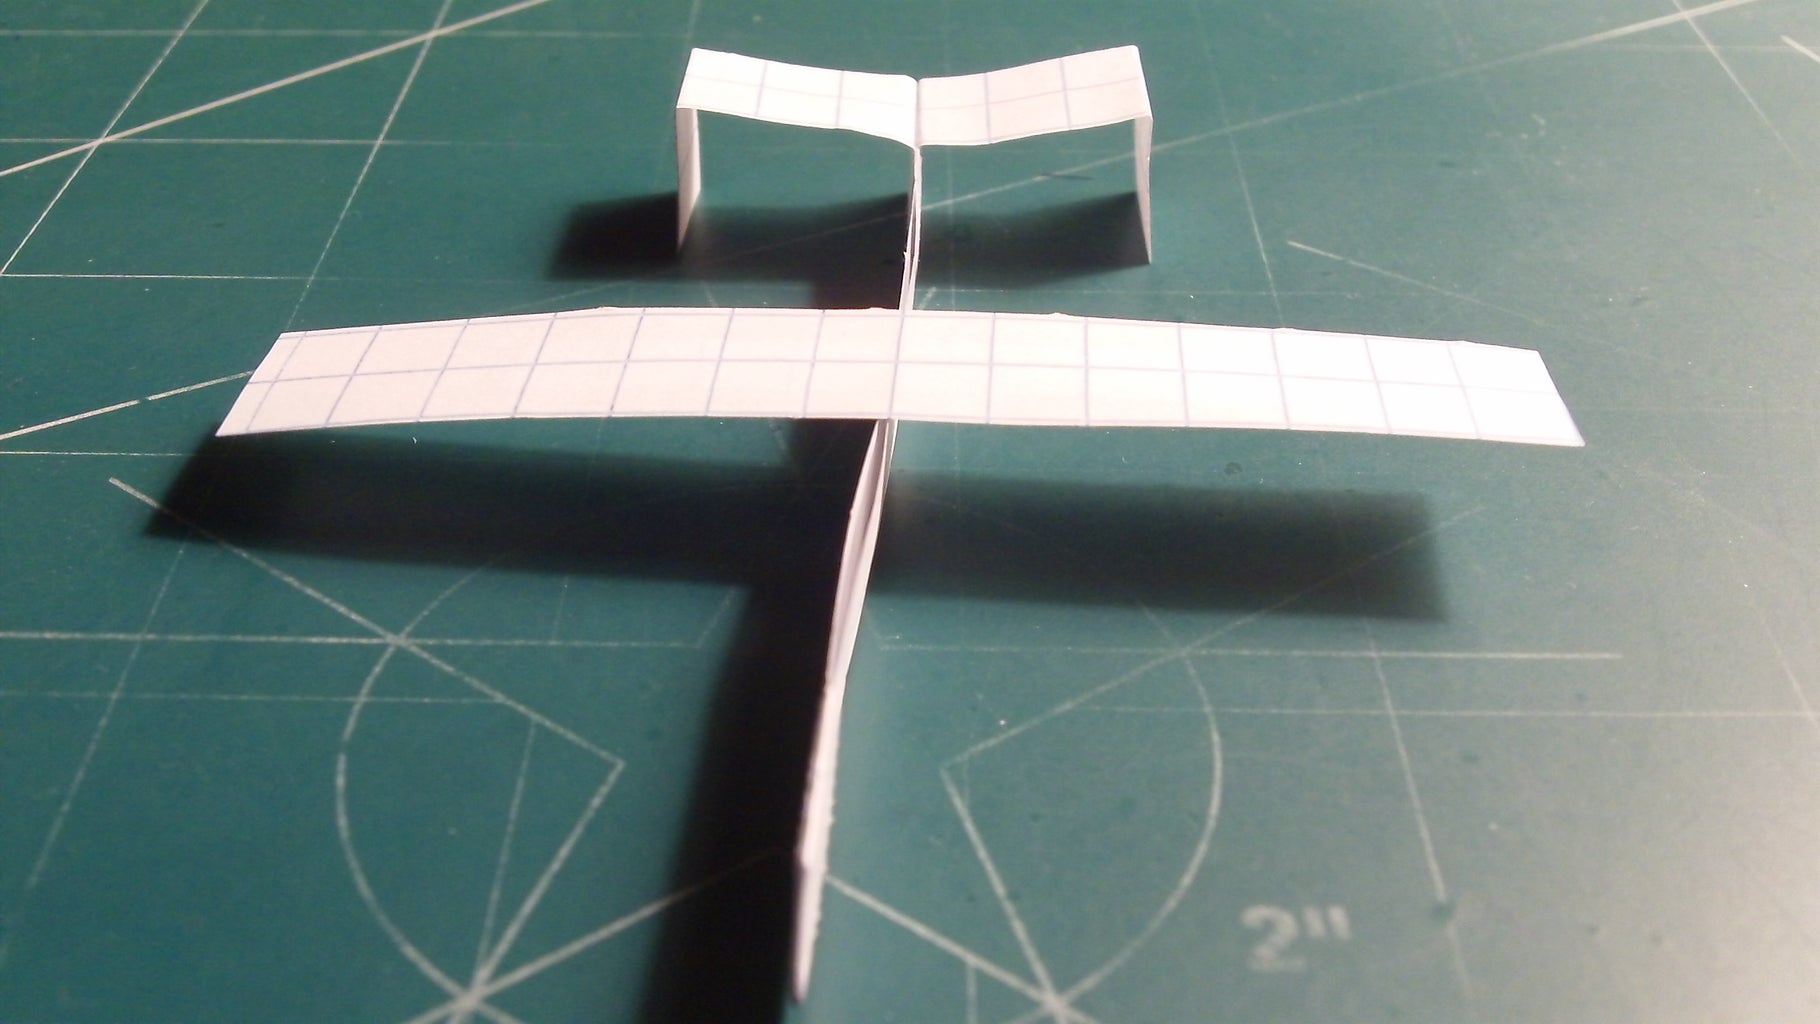 How to Make the Tomahawk Paper Airplane